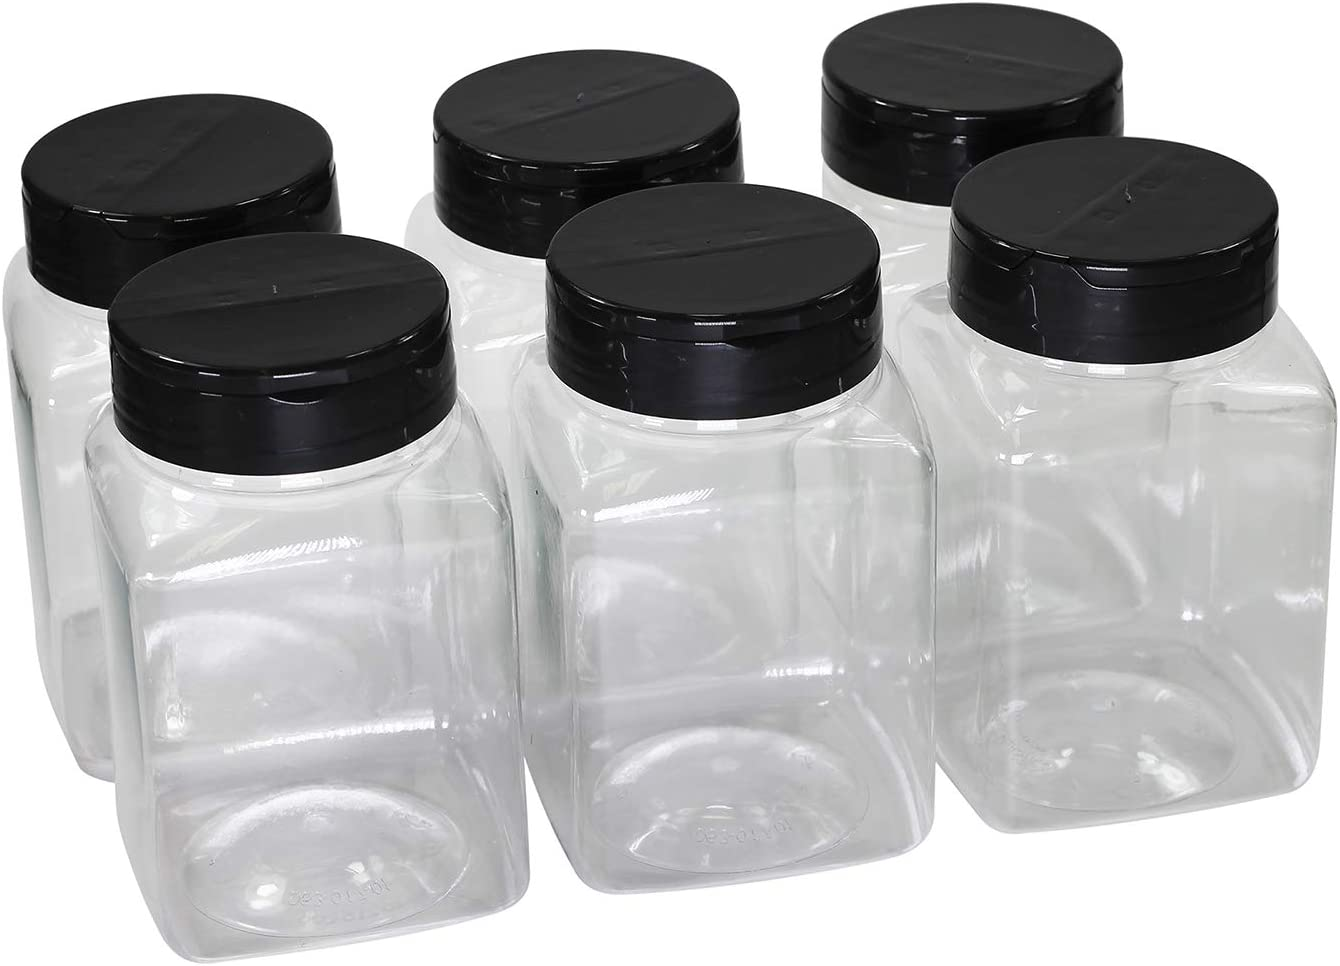 Pinnacle Mercantile Plastic Spice Jars 6-Pack Square Large 17 oz.Clear Containers Sifter Shaker Spoon Lid Refillable for Seasonings, Herbs, BBQ, Spices